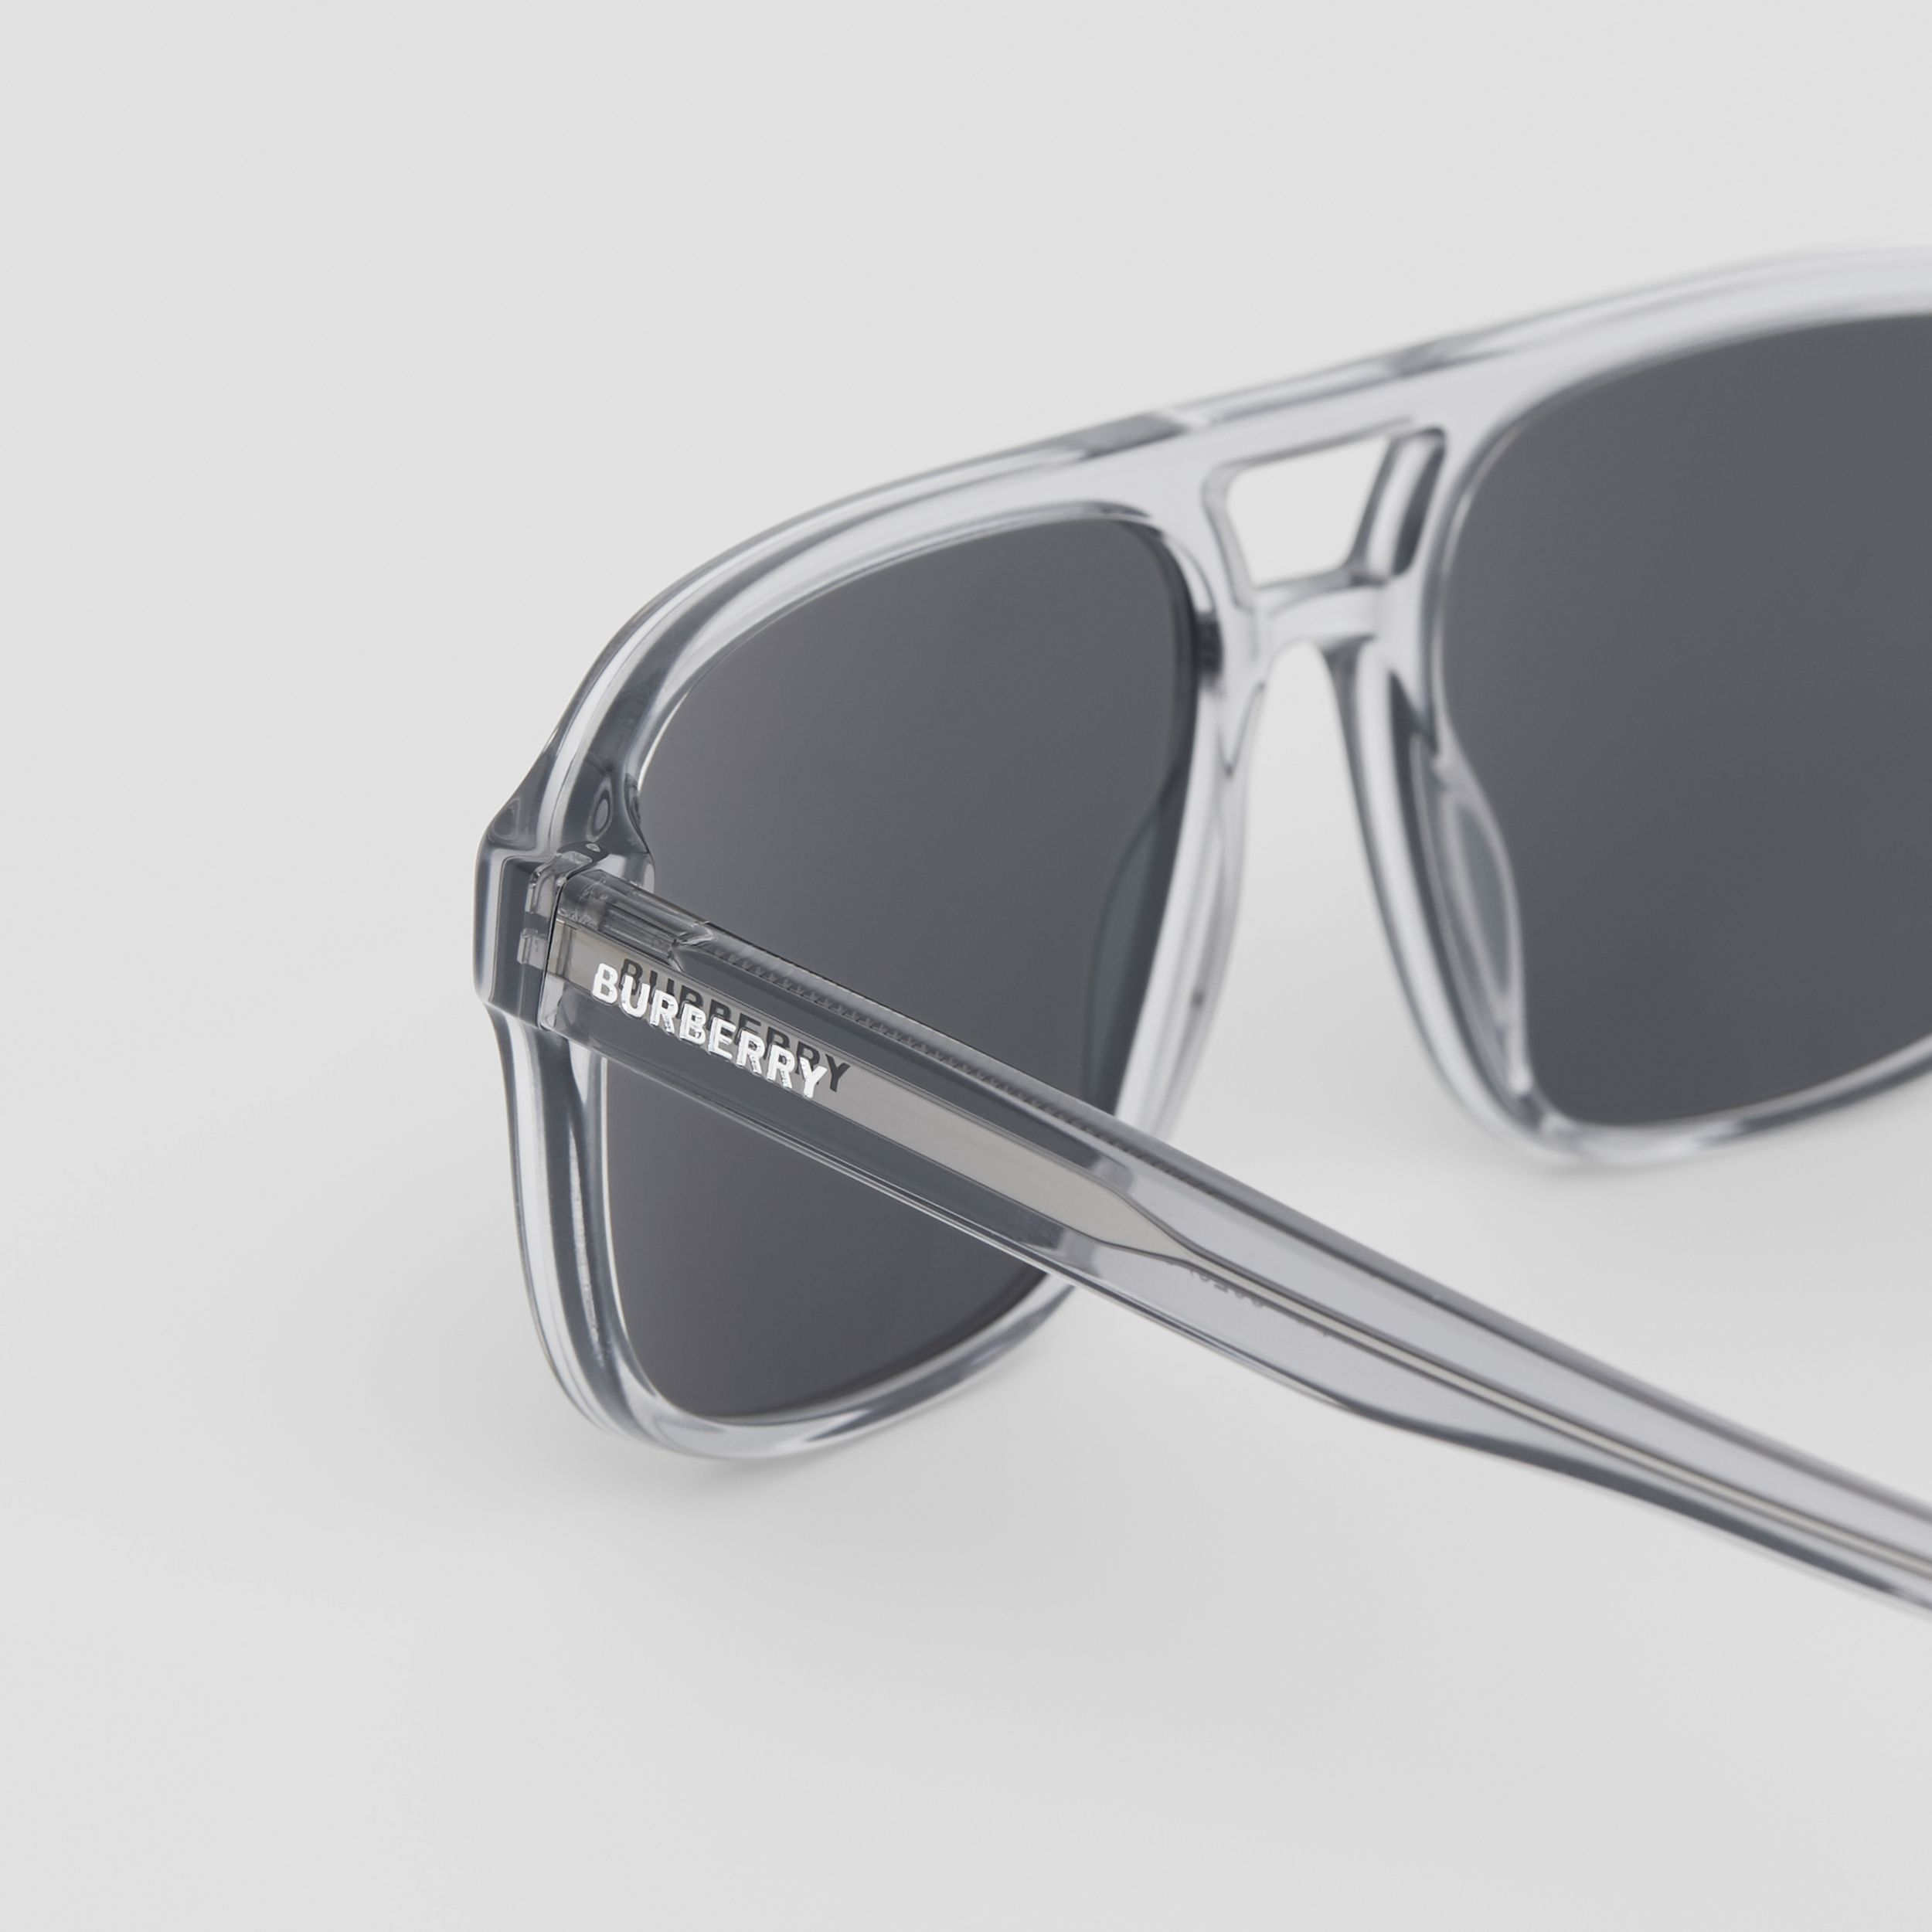 Square Frame Sunglasses in Grey - Men | Burberry - 2